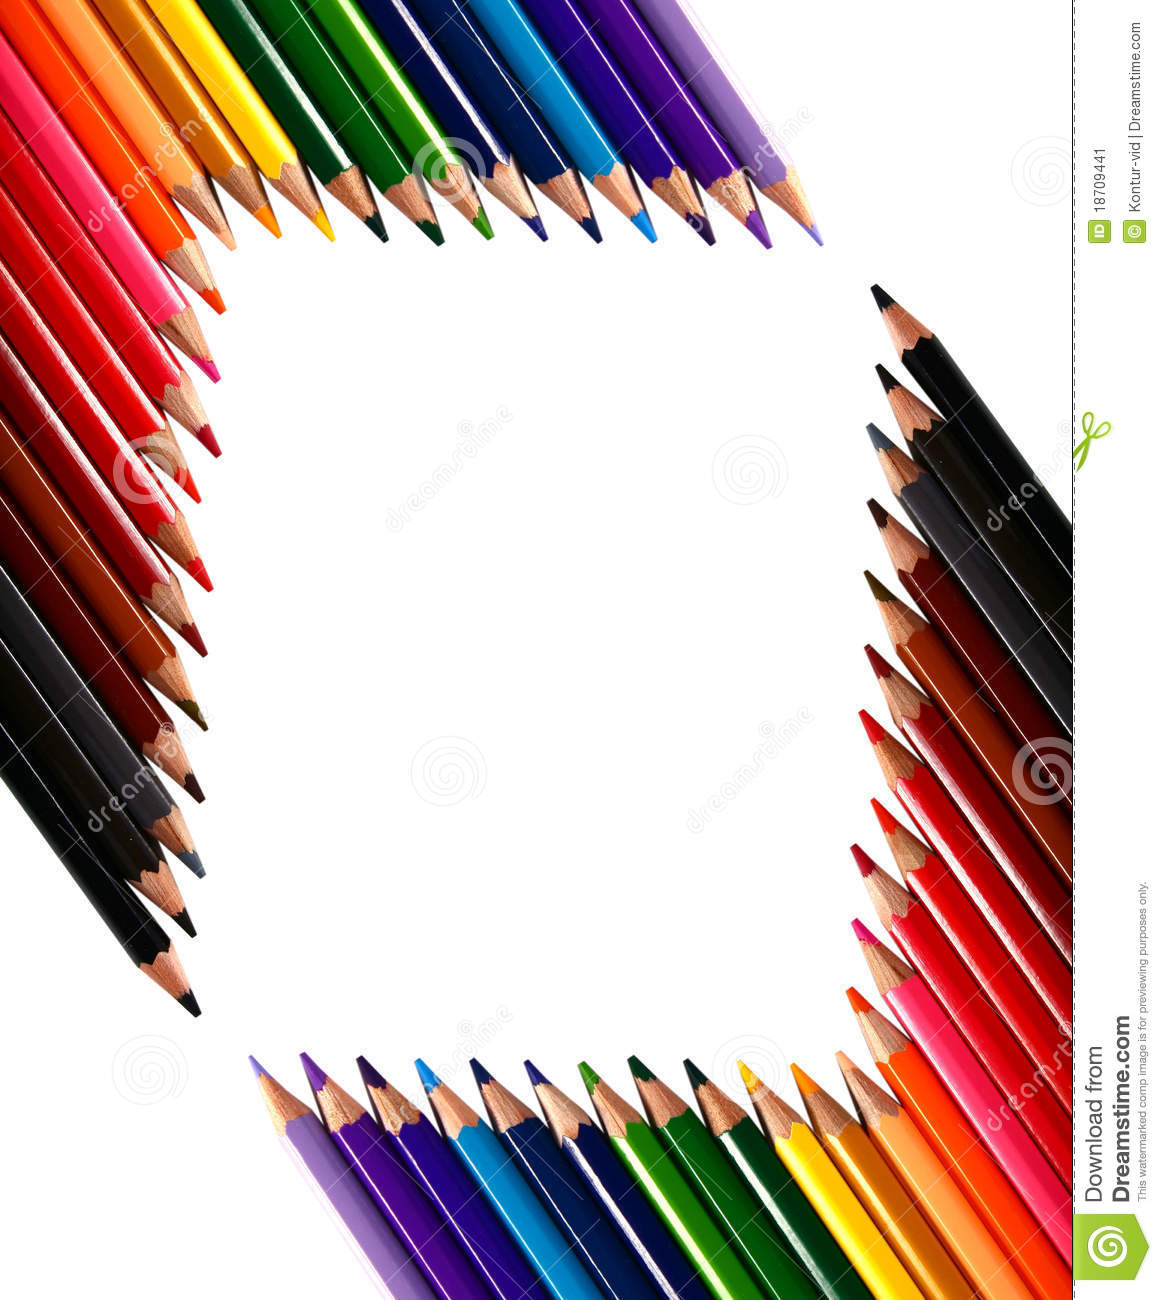 Frame Made Out Of Crayons Coloured Pencils Stock Image